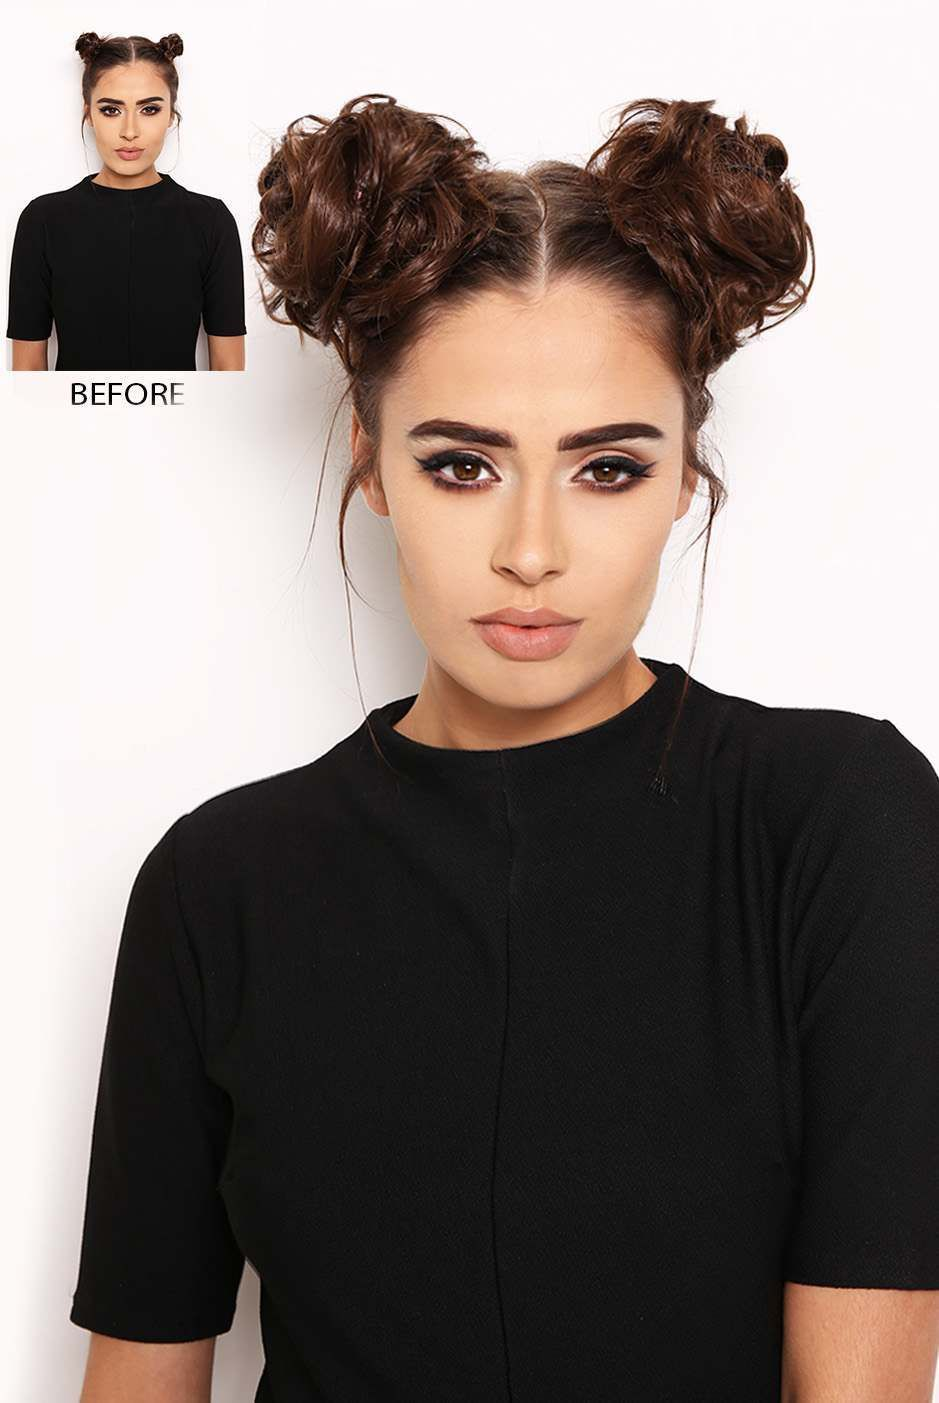 Style It Up With Our Super Cute Space Buns These Mini Scrunchie Buns Are Perfect For Adding Volume To Your Buns Space Buns Hair Hair Pieces Bun Hairstyles